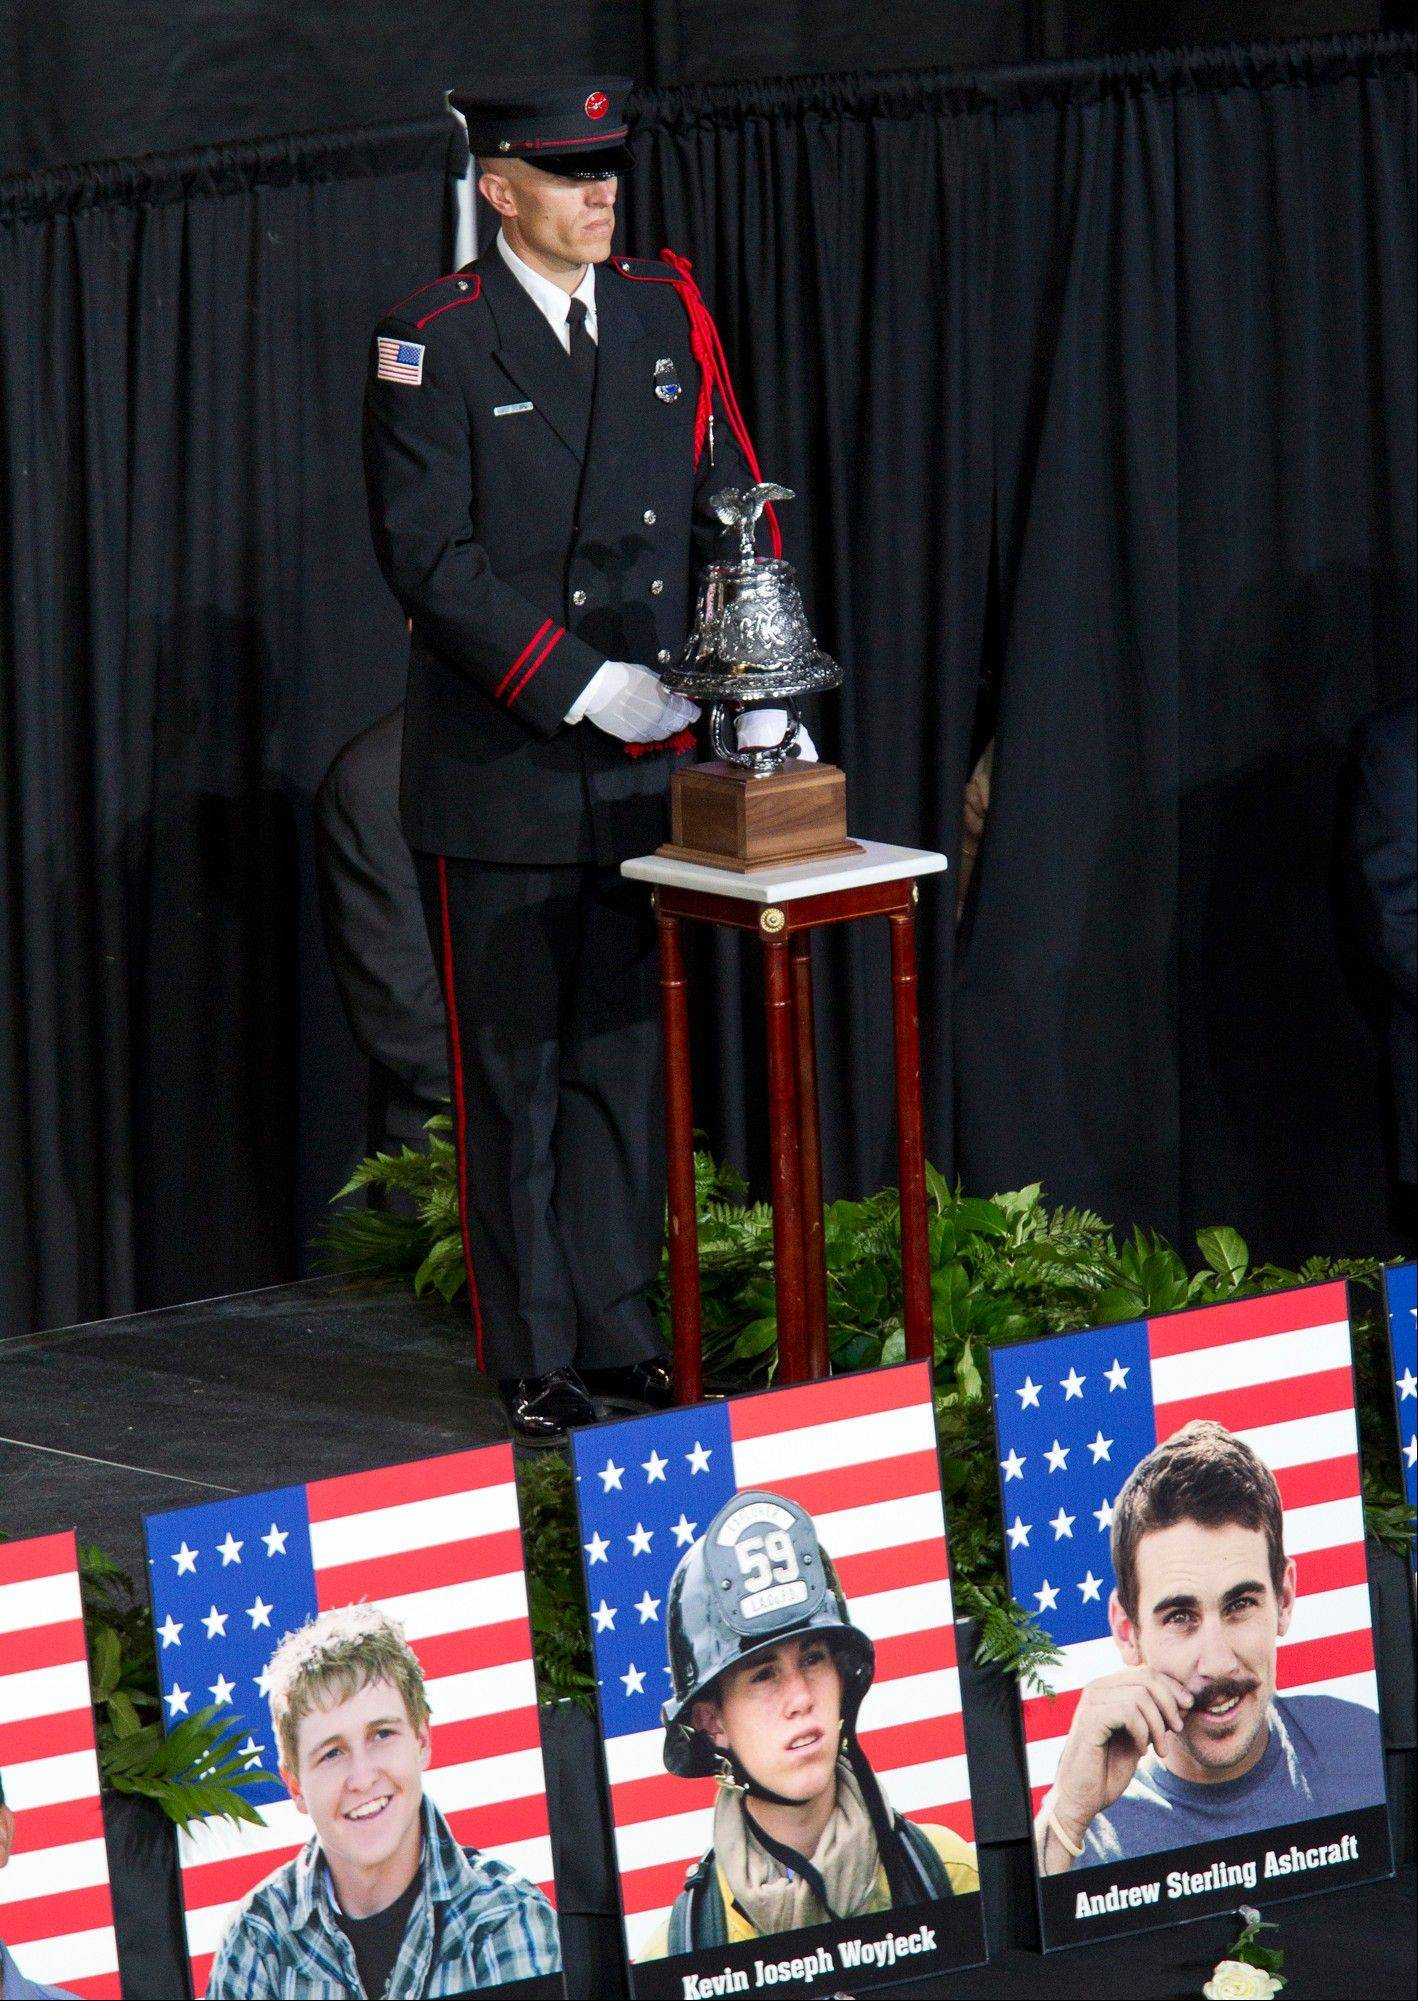 A bell is rung for each fallen firefighter during a memorial service for the 19 fallen firefighters at Tim's Toyota Center in Prescott Valley, Ariz.